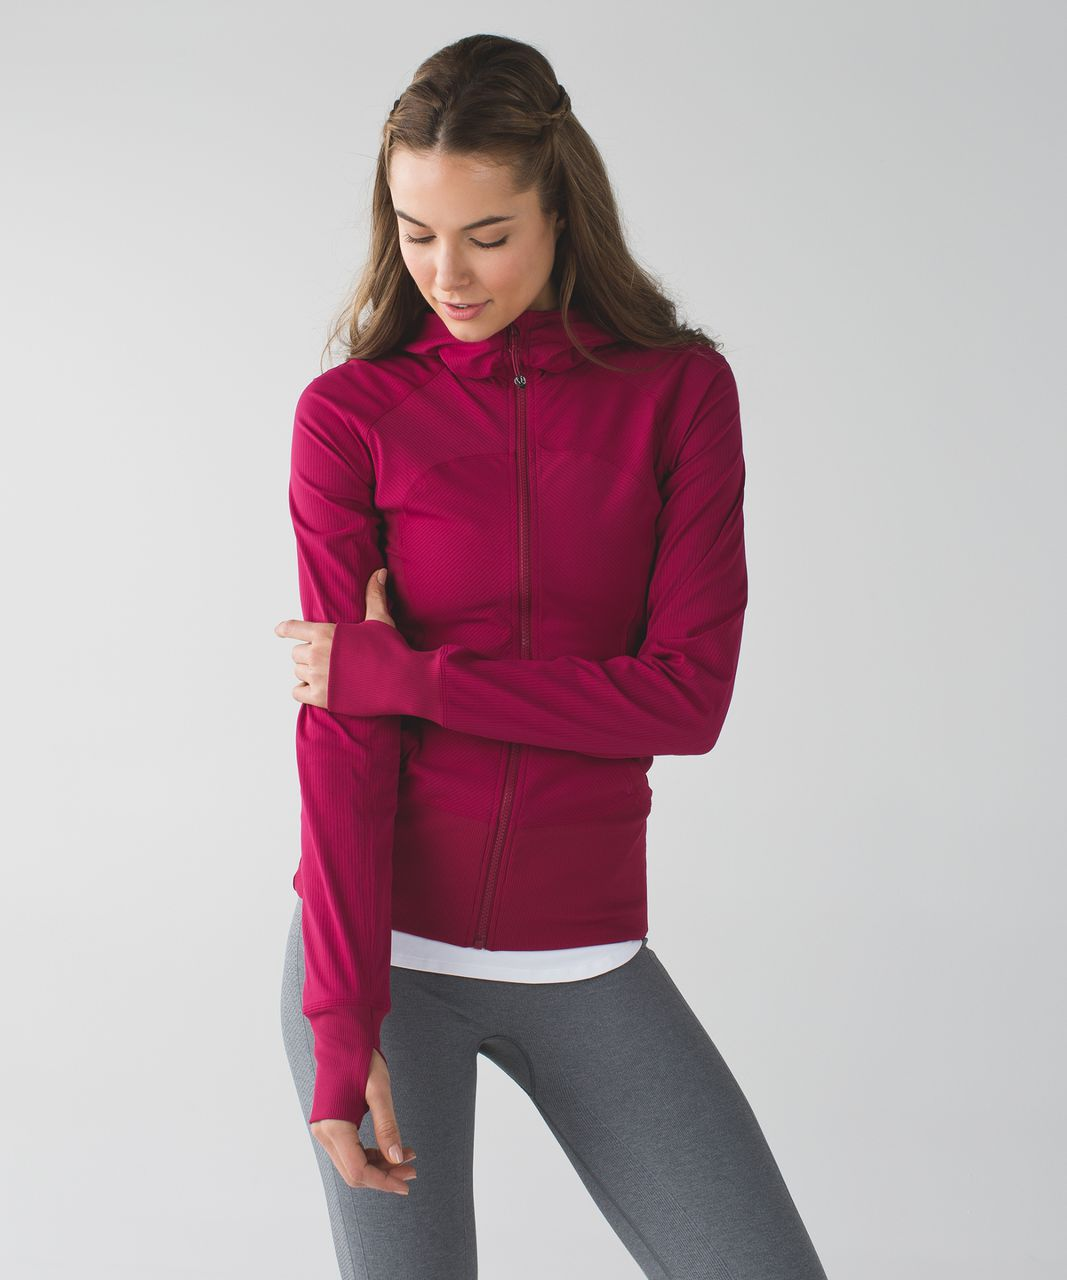 Lululemon In Flux Jacket - Berry Rumble